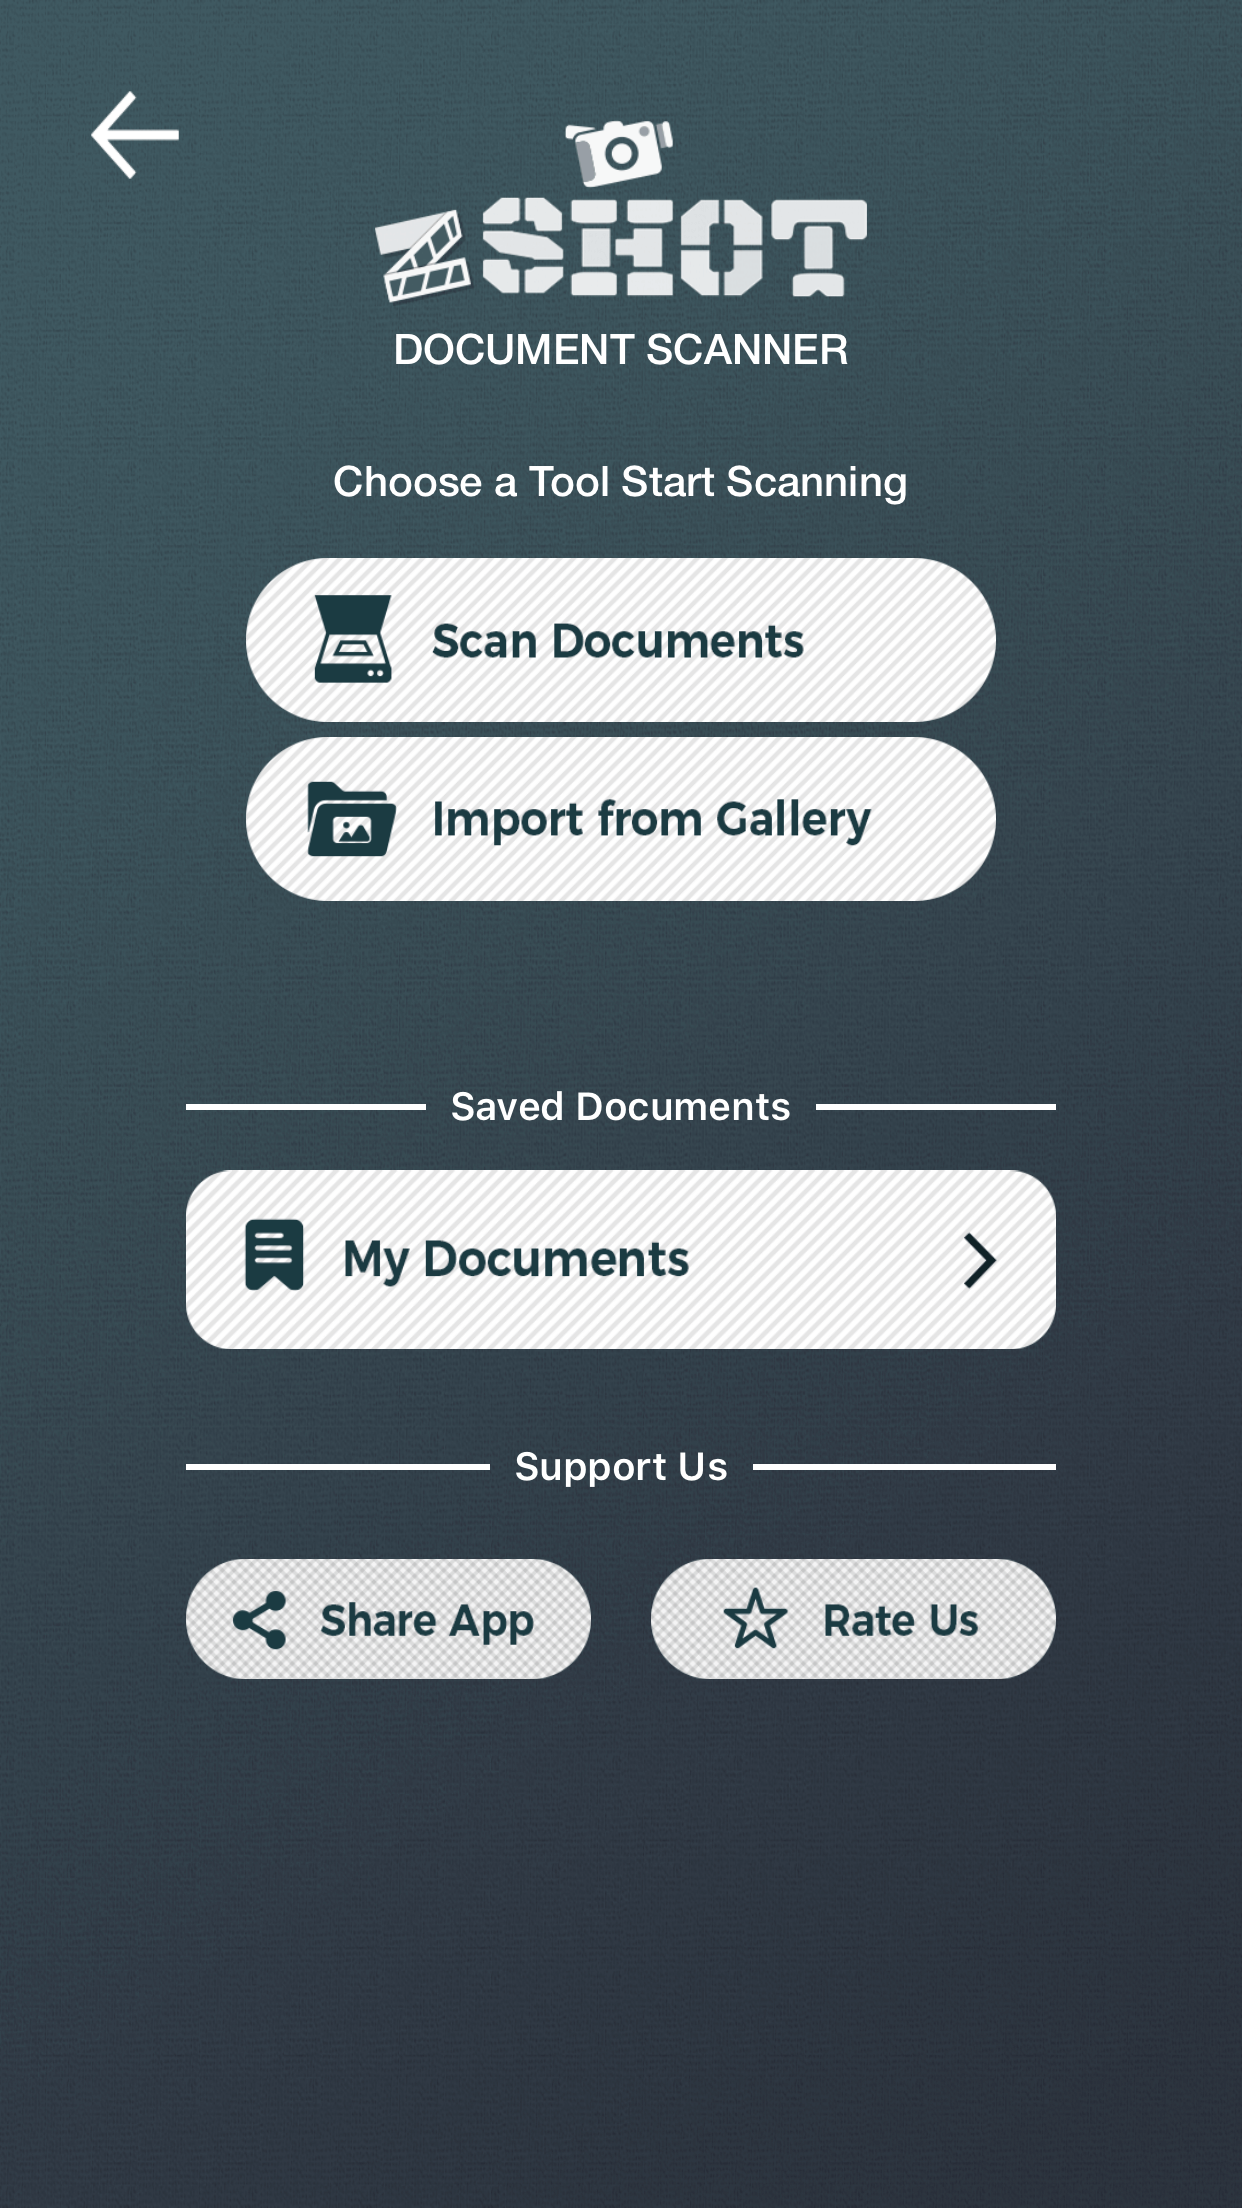 Scan documents with Document Scanner App.